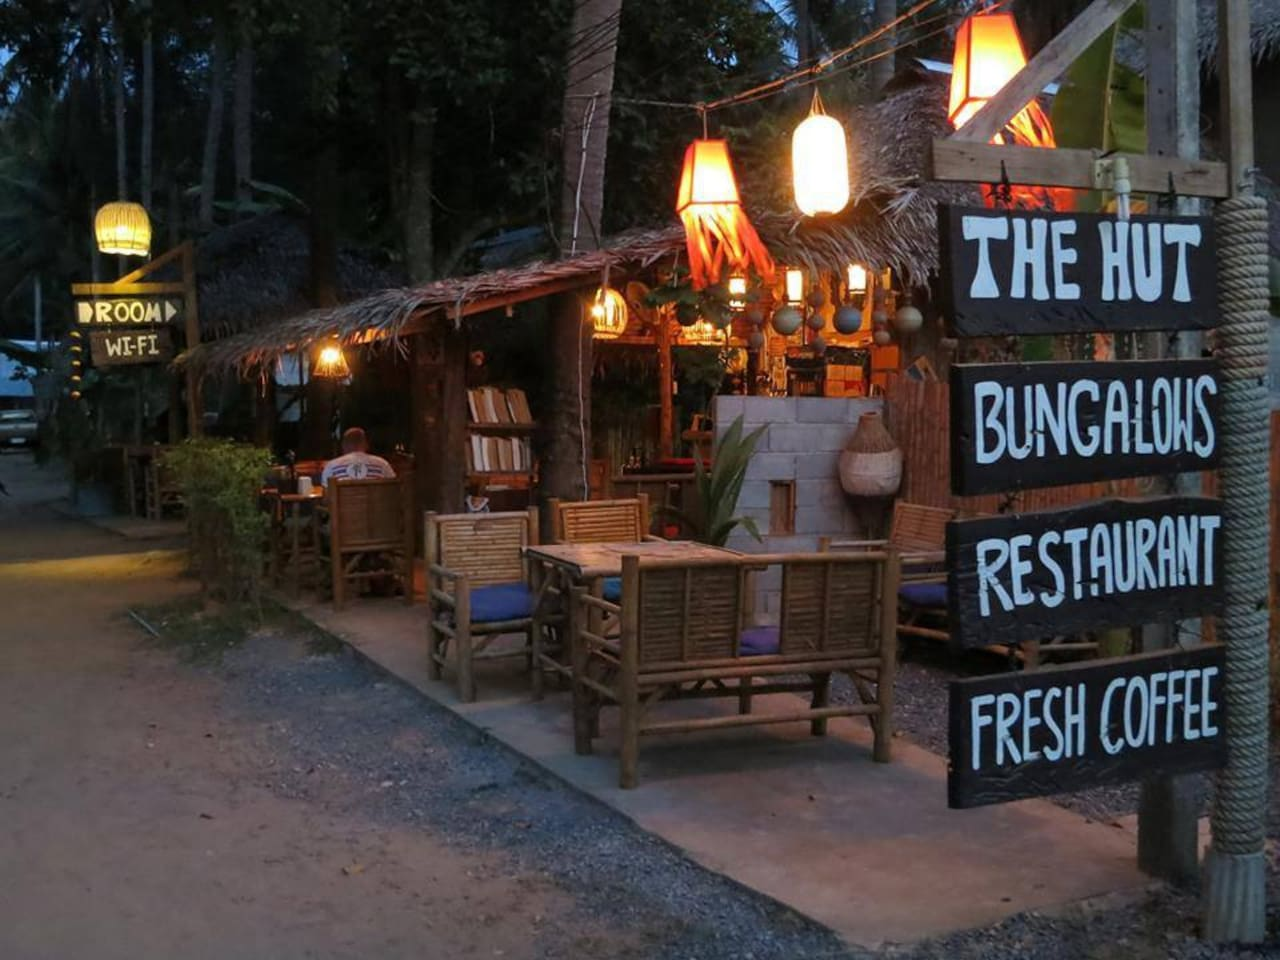 The Hut Bungalows and Restaurant - Klong Nin Beach, Ko Lanta. Clean, budget rooms, cheap and tasty food. We have bikes for rent, laundry service and friendly staff. Close to beach, market and other restaurants.